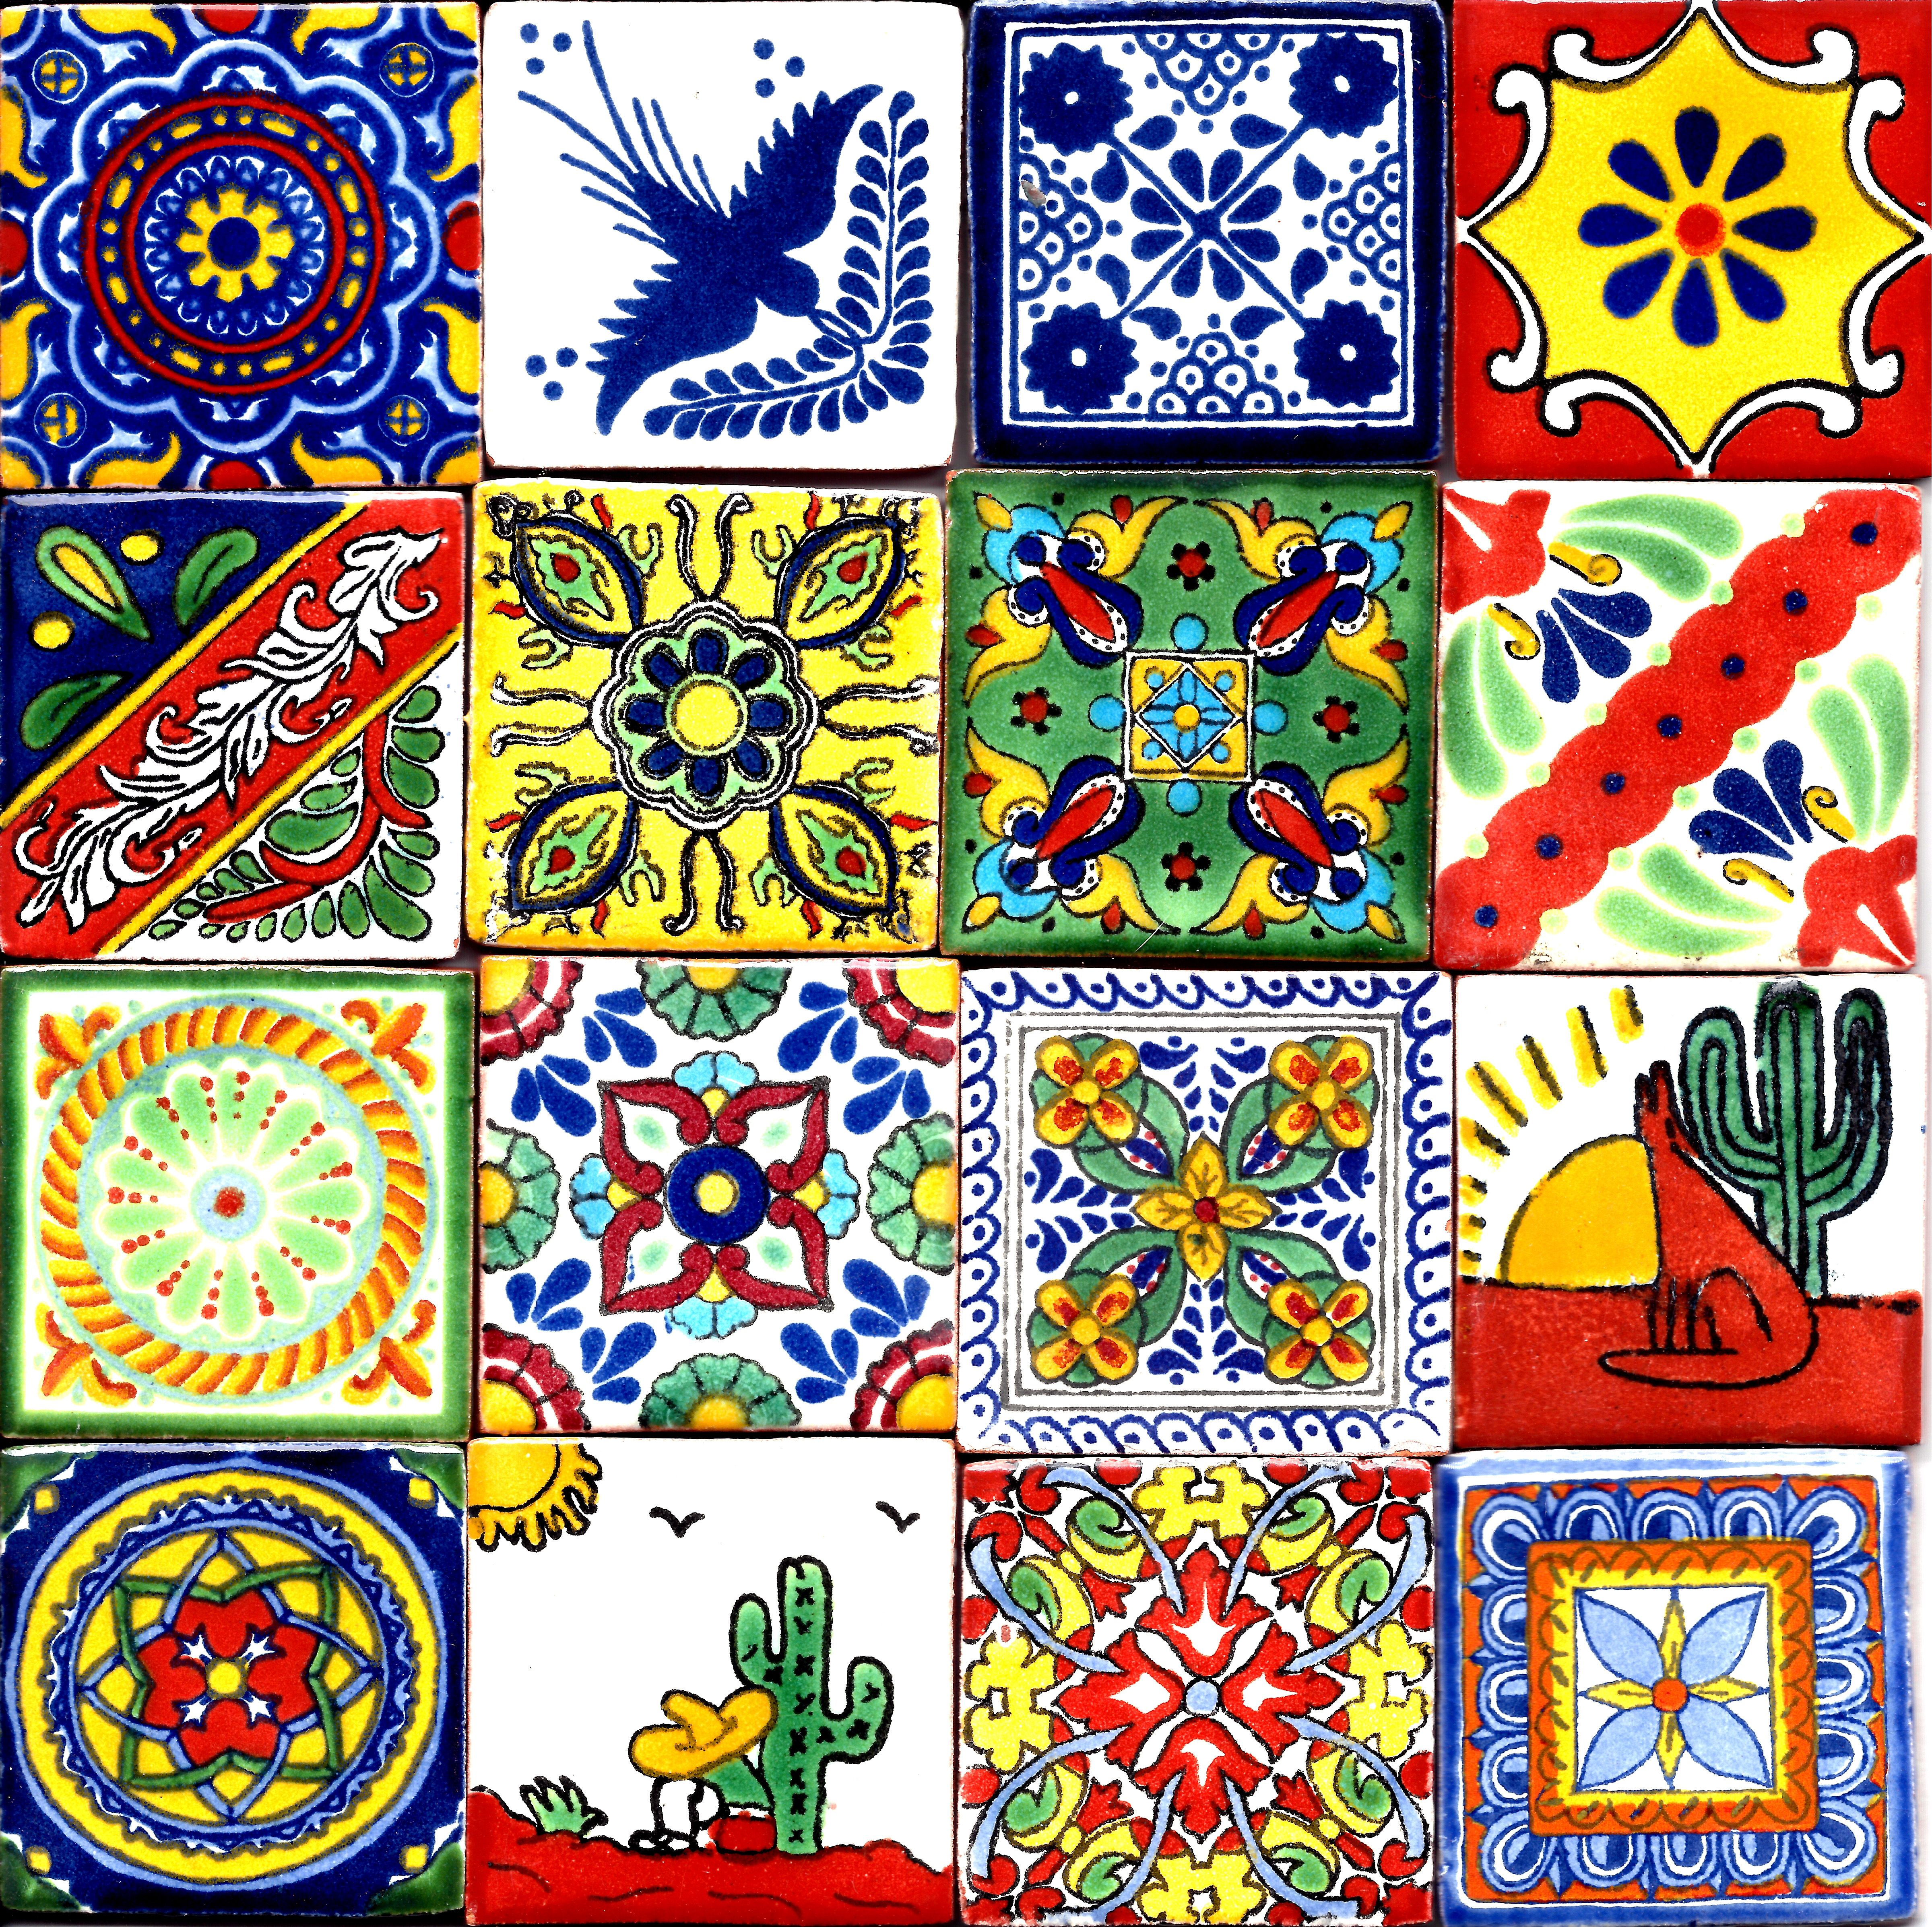 Hand Painted Mexican Clay Tiles Purchased At El Mercado In San Antonio Tx Every